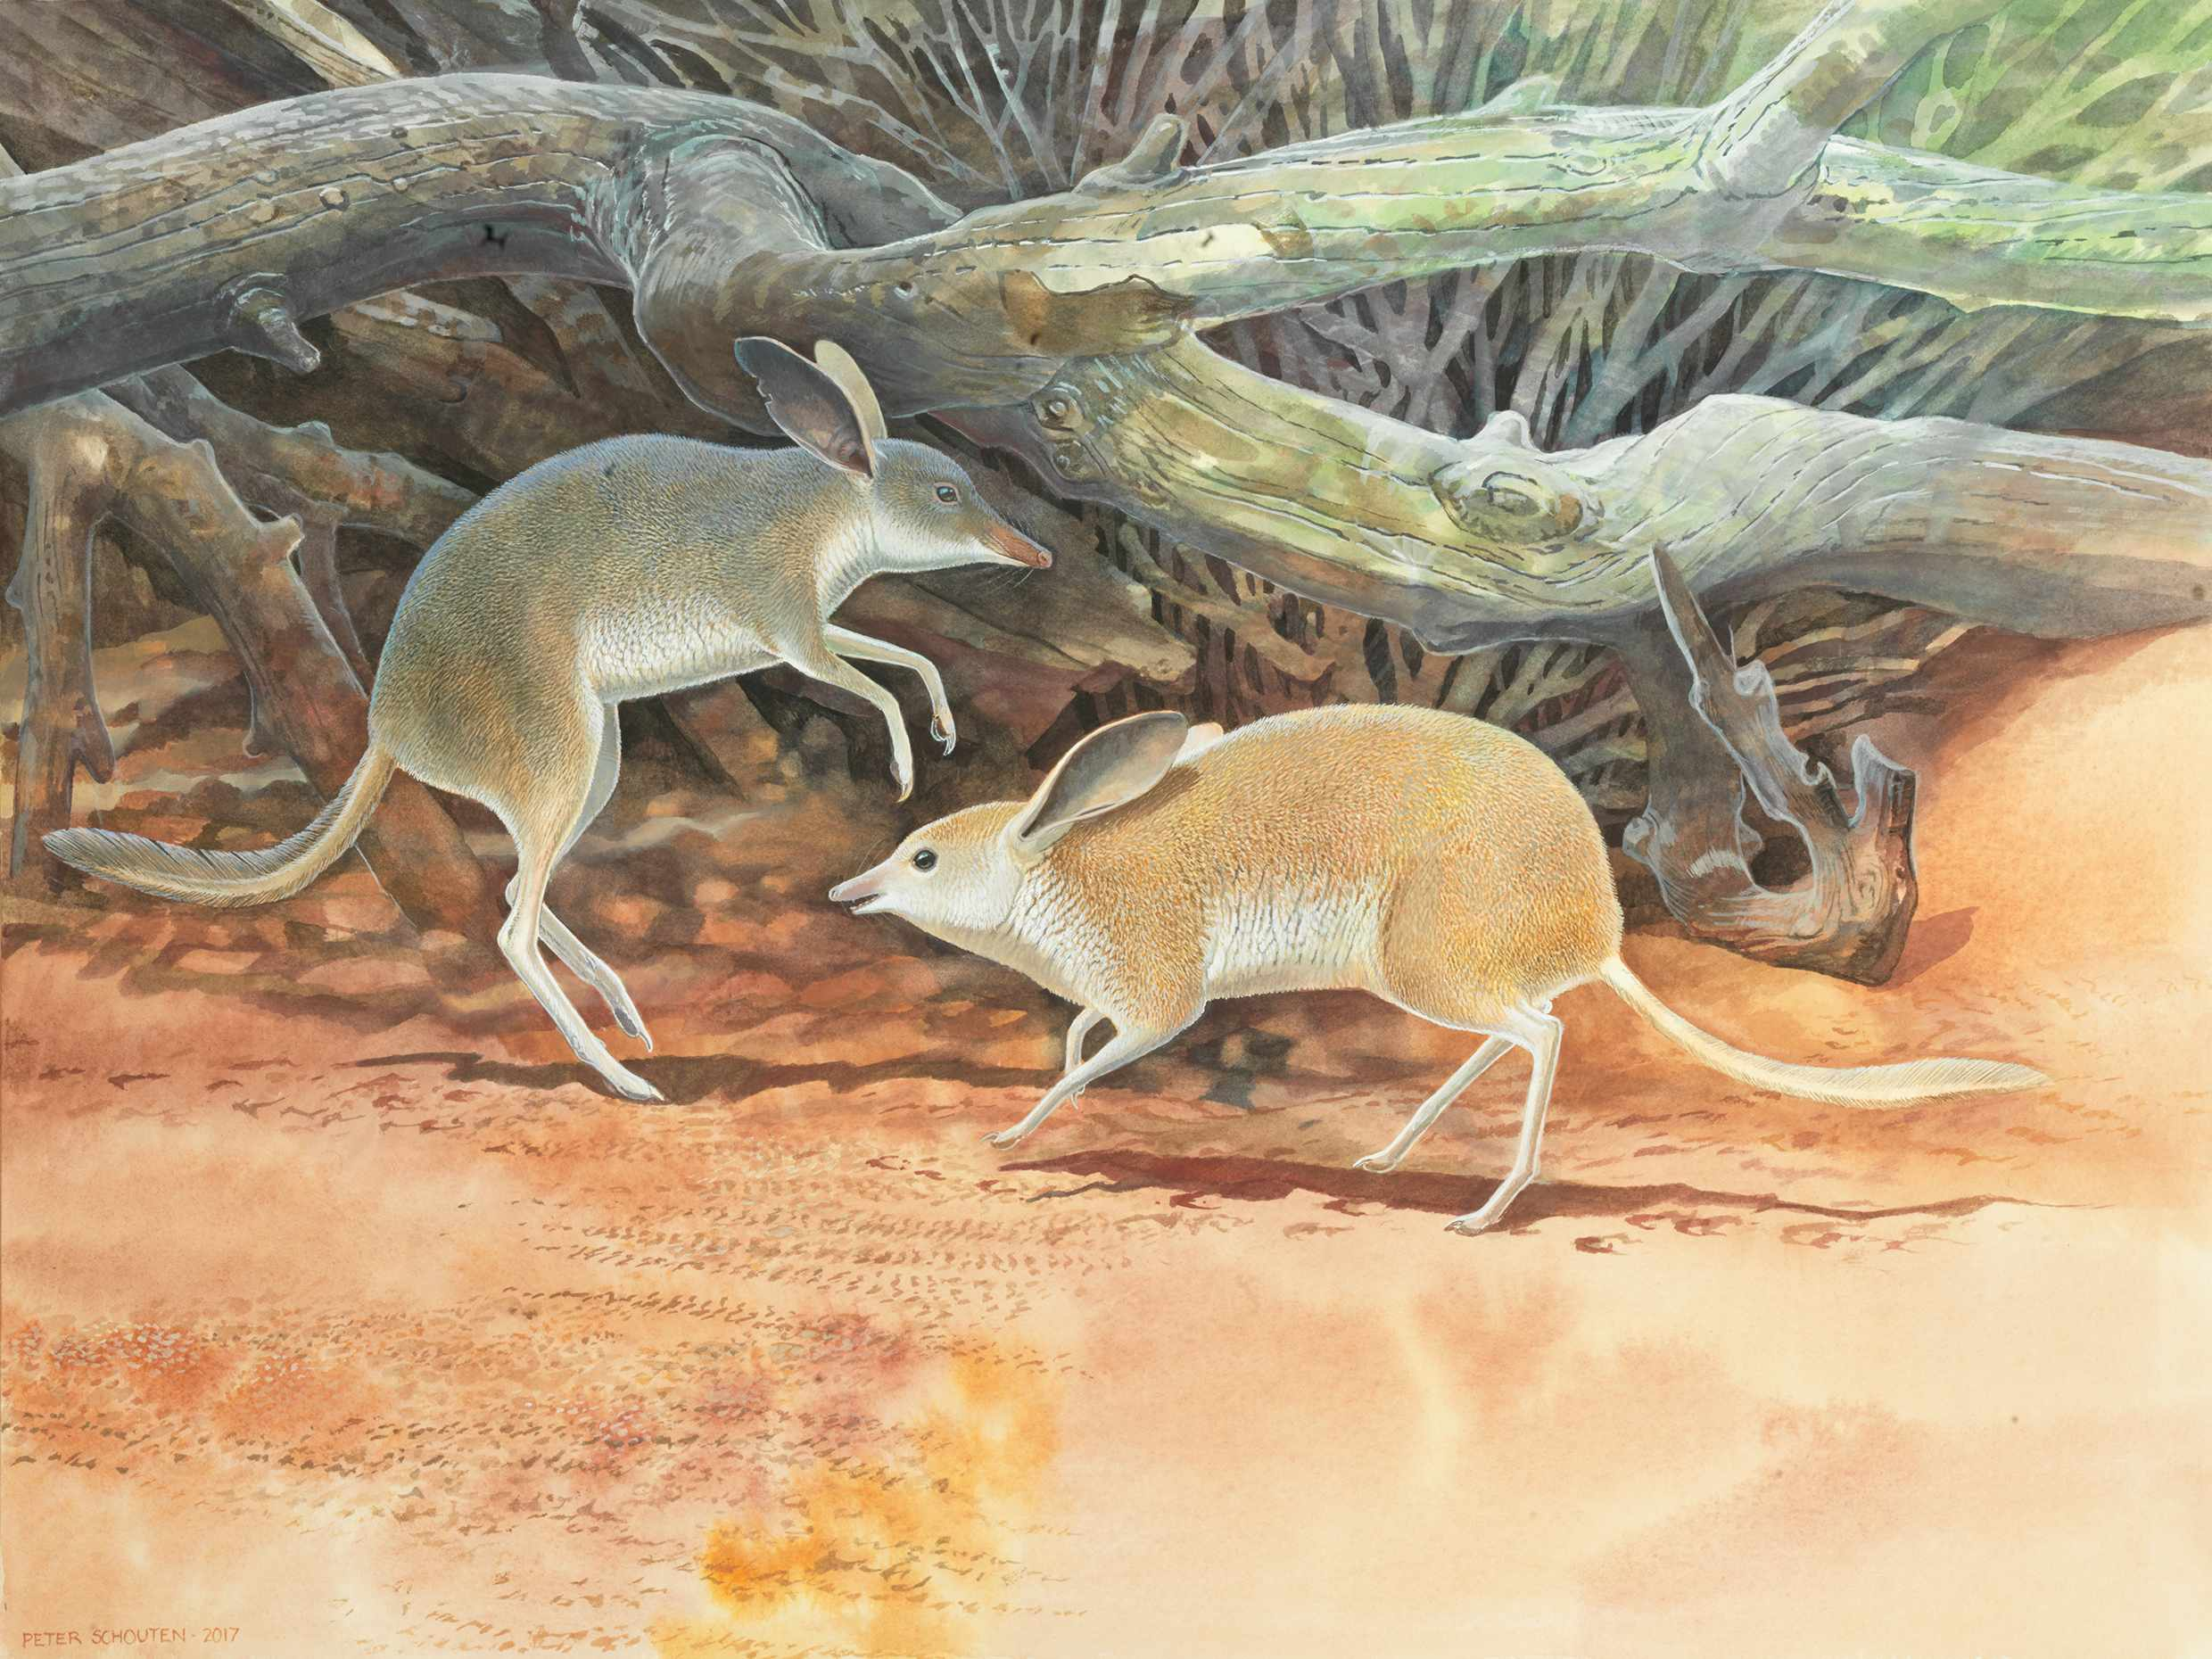 Chaeropus yirratji, a newly discovered species of pig-footed bandicoot. © Peter Schouten/WA Museum